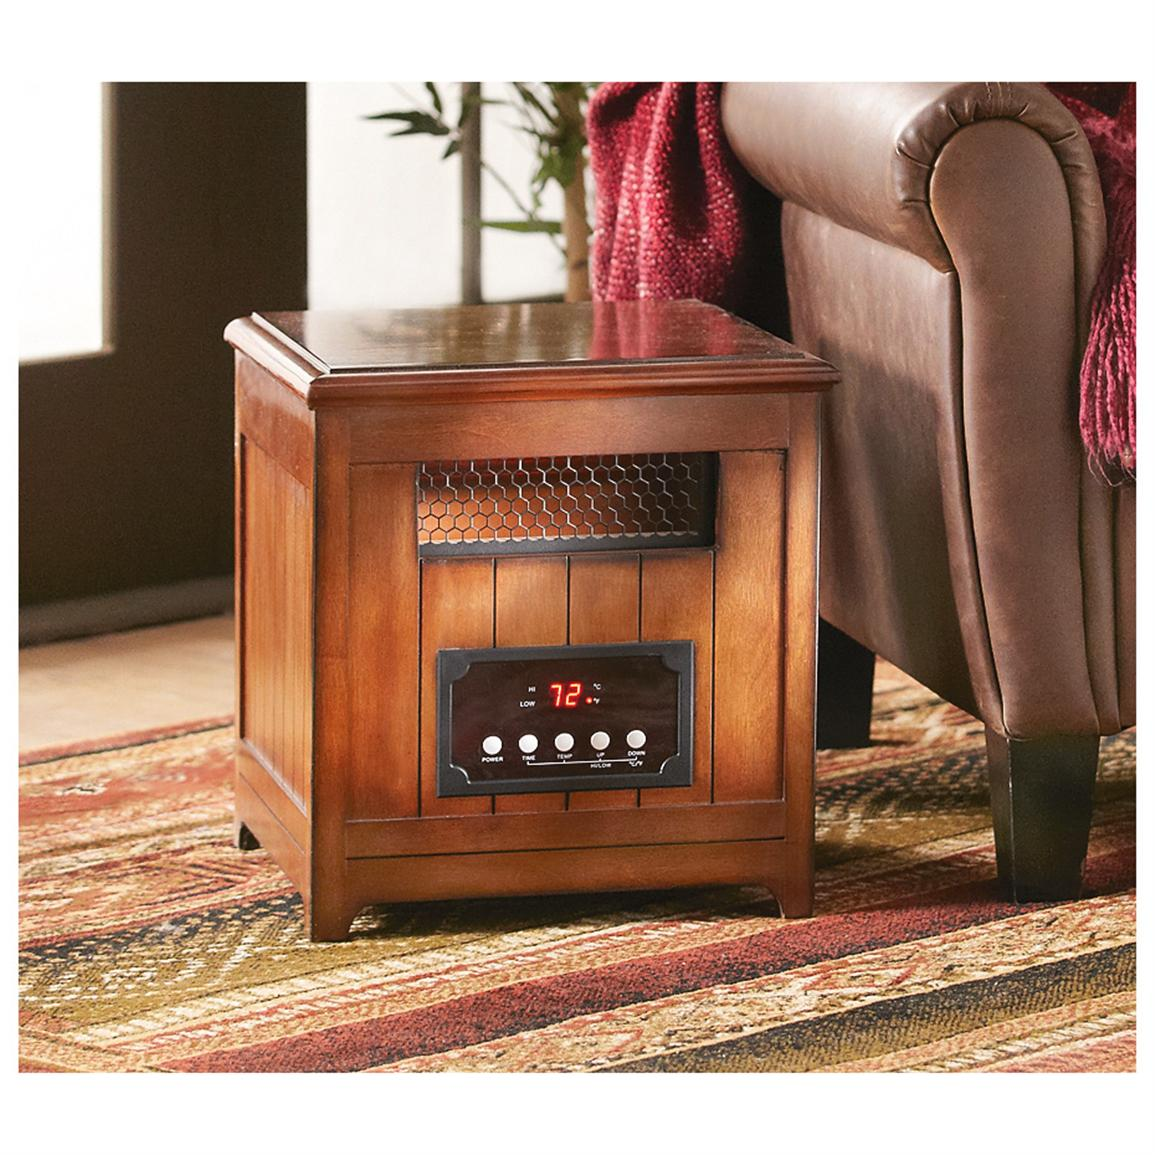 Infrared Heater Side Table, Pecan